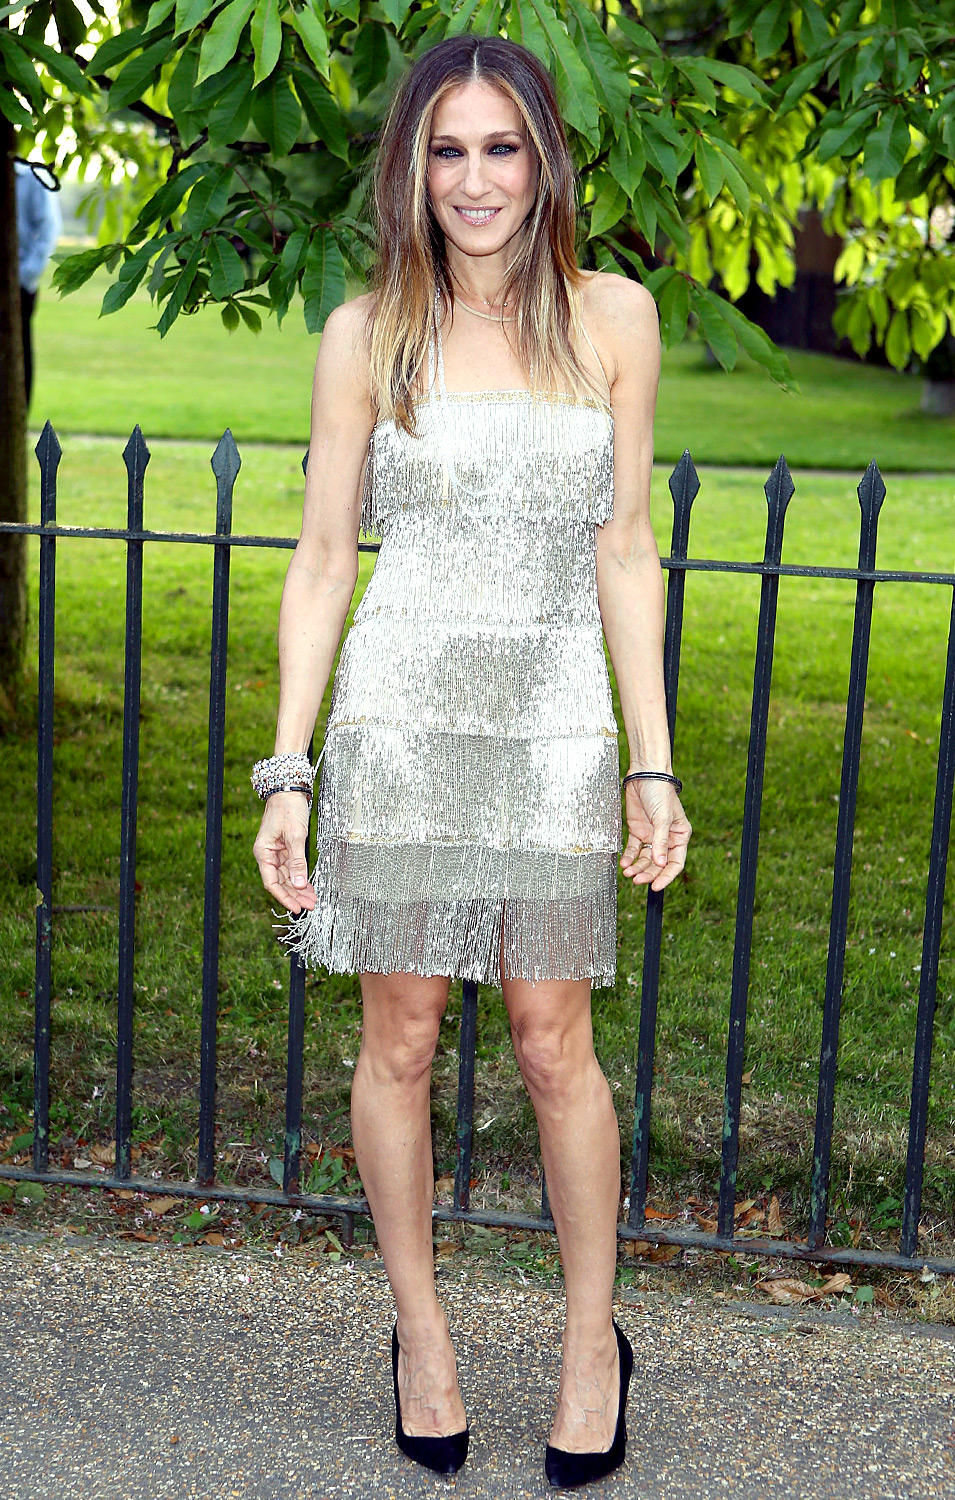 Channeling her inner '20s flapper, the Sex and the City star donned a shimmering, fringed dress to attend the Serpentine Gallery's annual summertime bash in London on June 26, 2013.